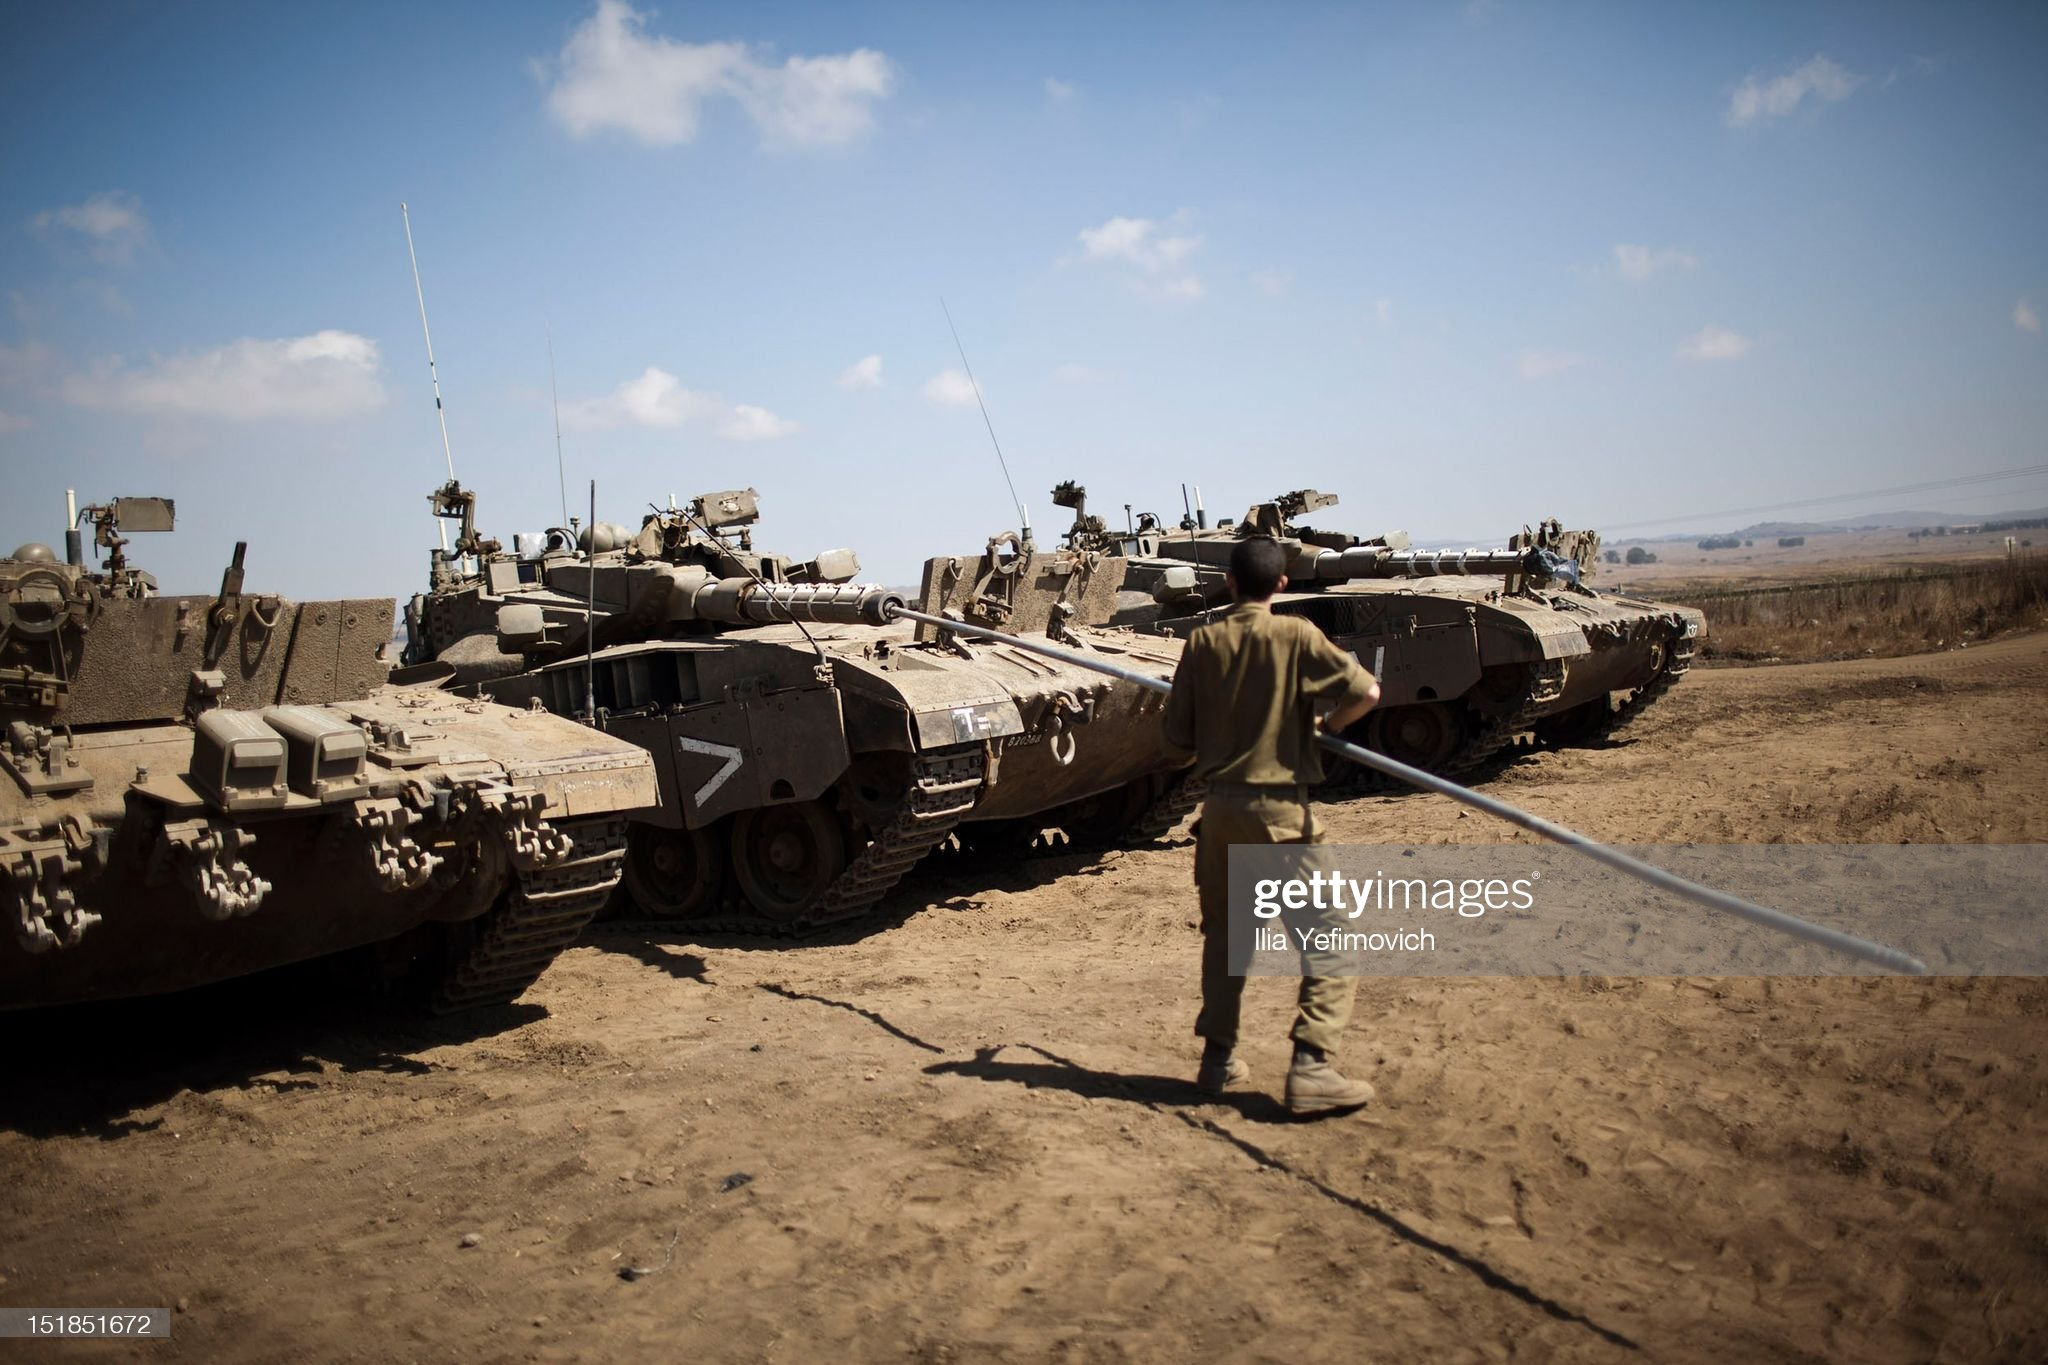 https://media.gettyimages.com/photos/an-idf-soldier-maintains-a-tank-during-the-efrat-exercise-on-12-2012-picture-id151851672?s=2048x2048